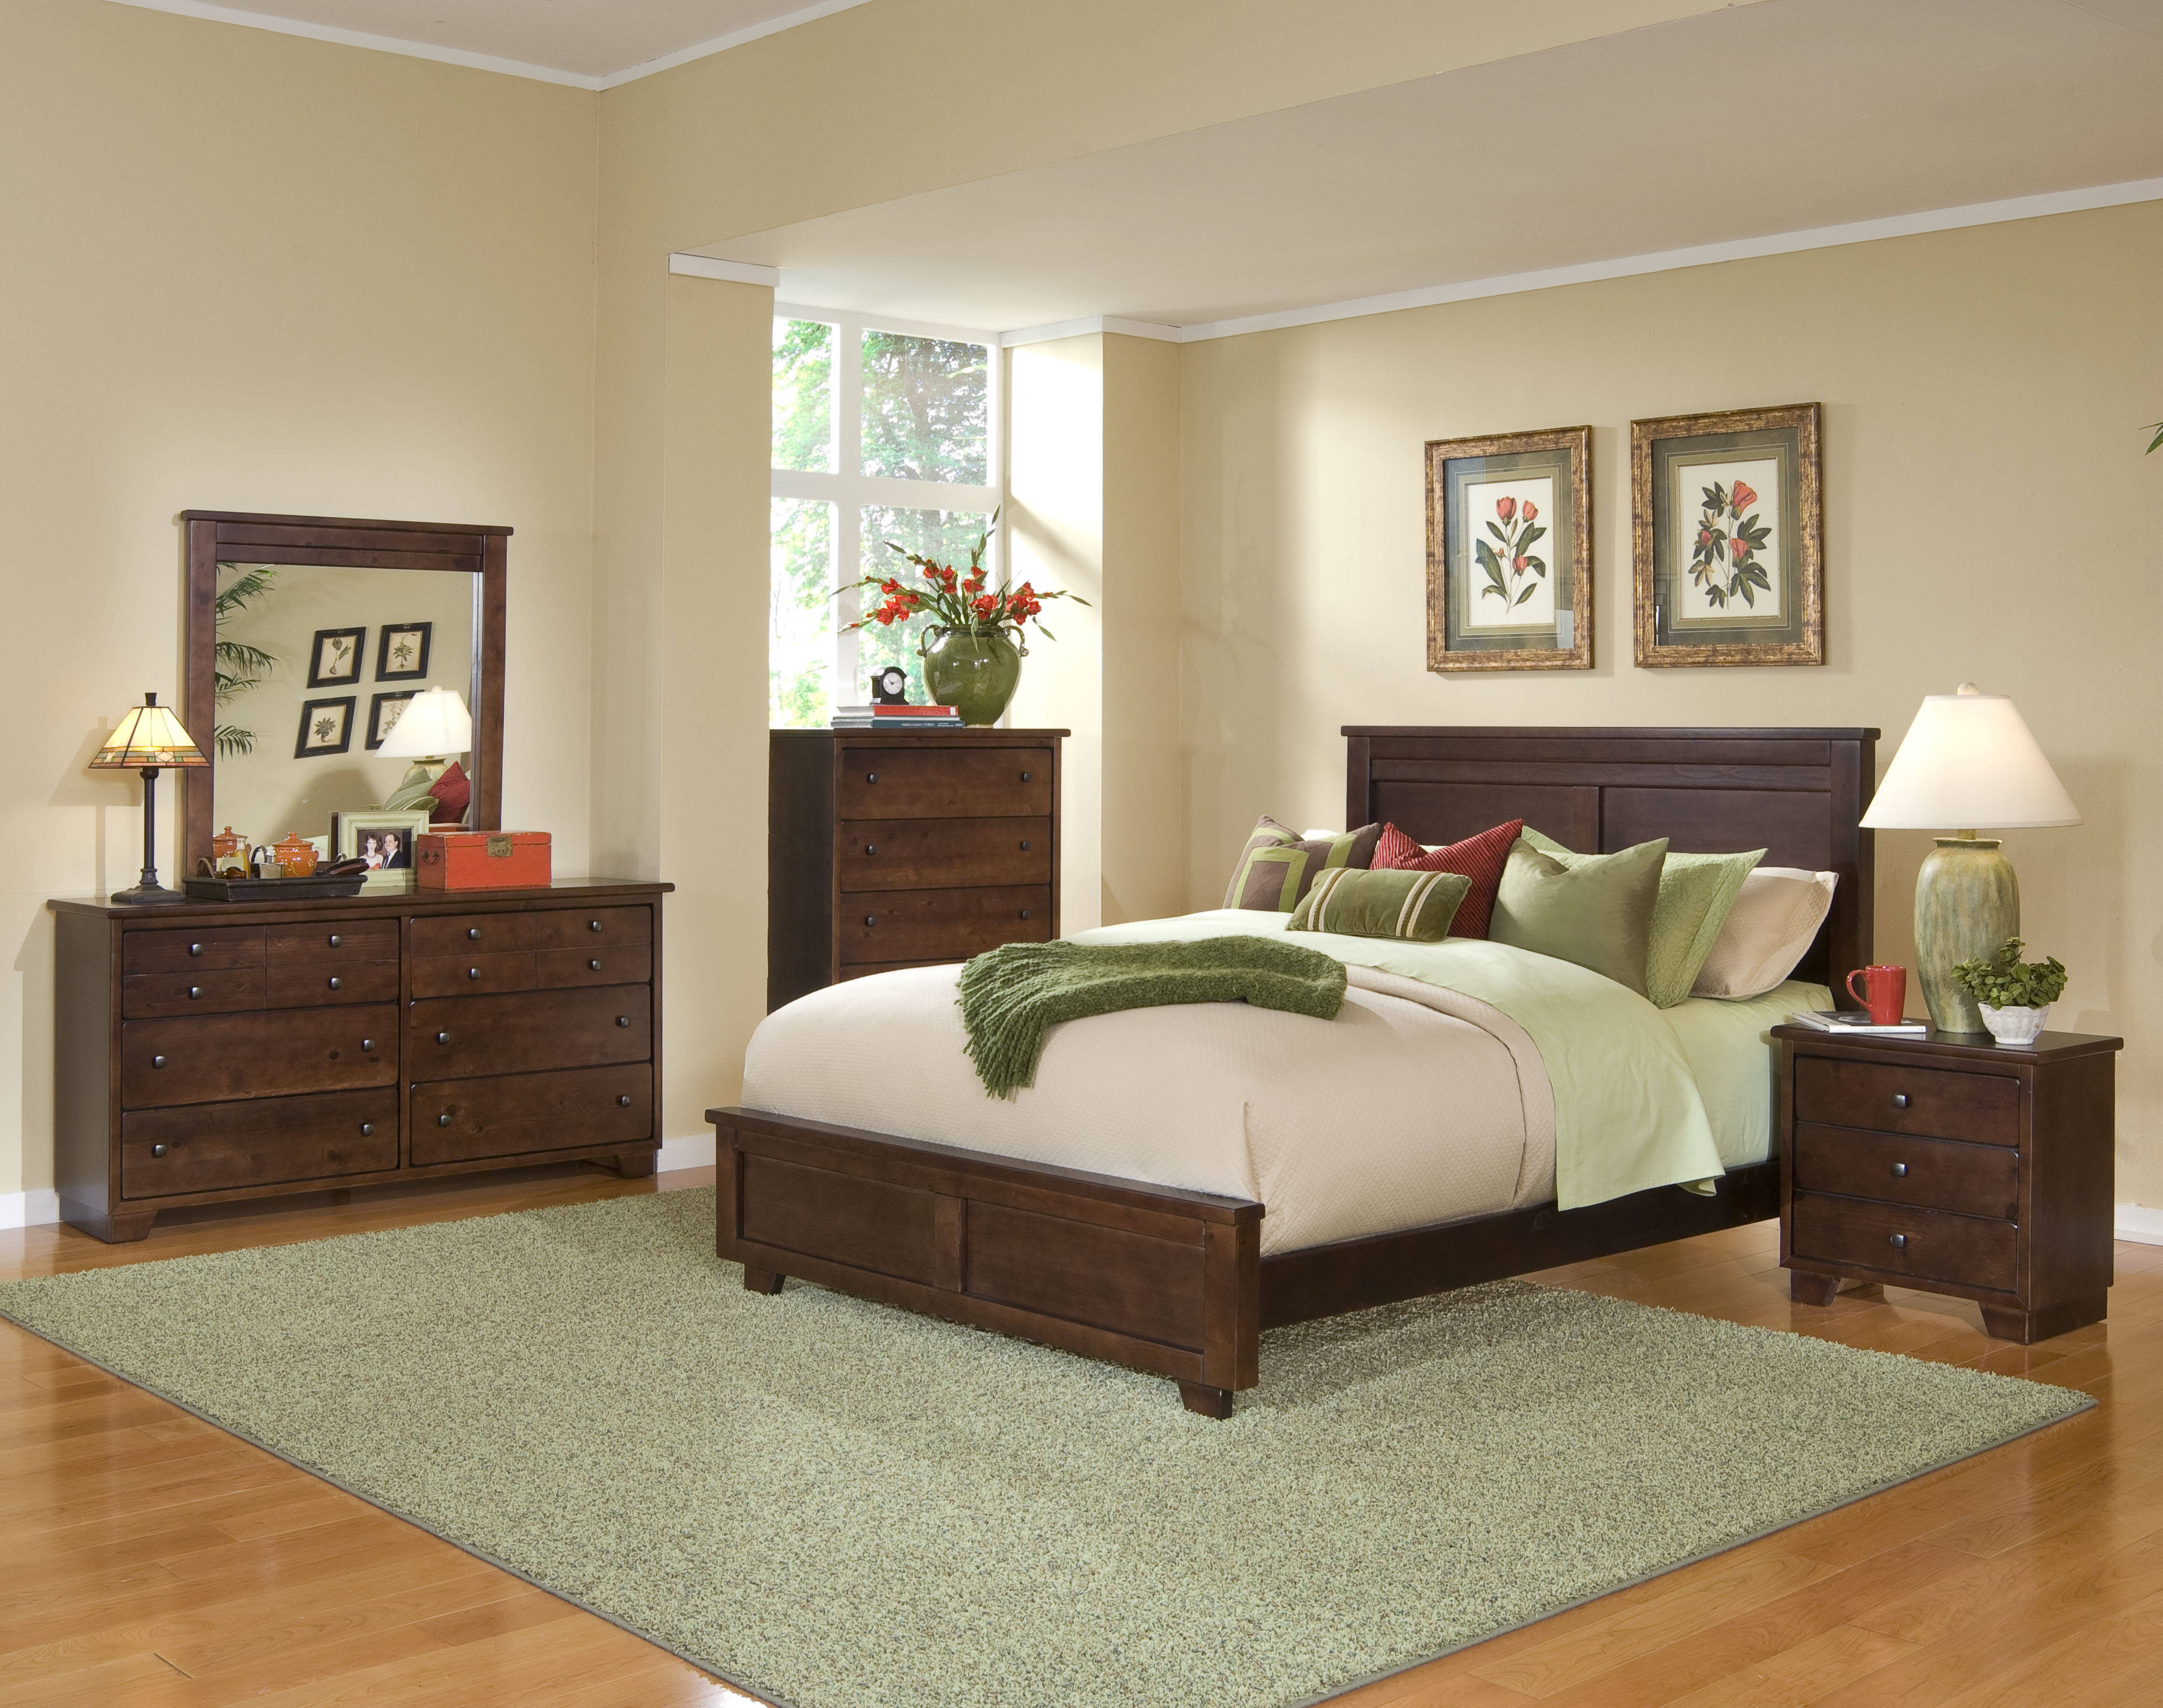 Progressive Furniture Diego Espresso Pine 2pc Bedroom Set